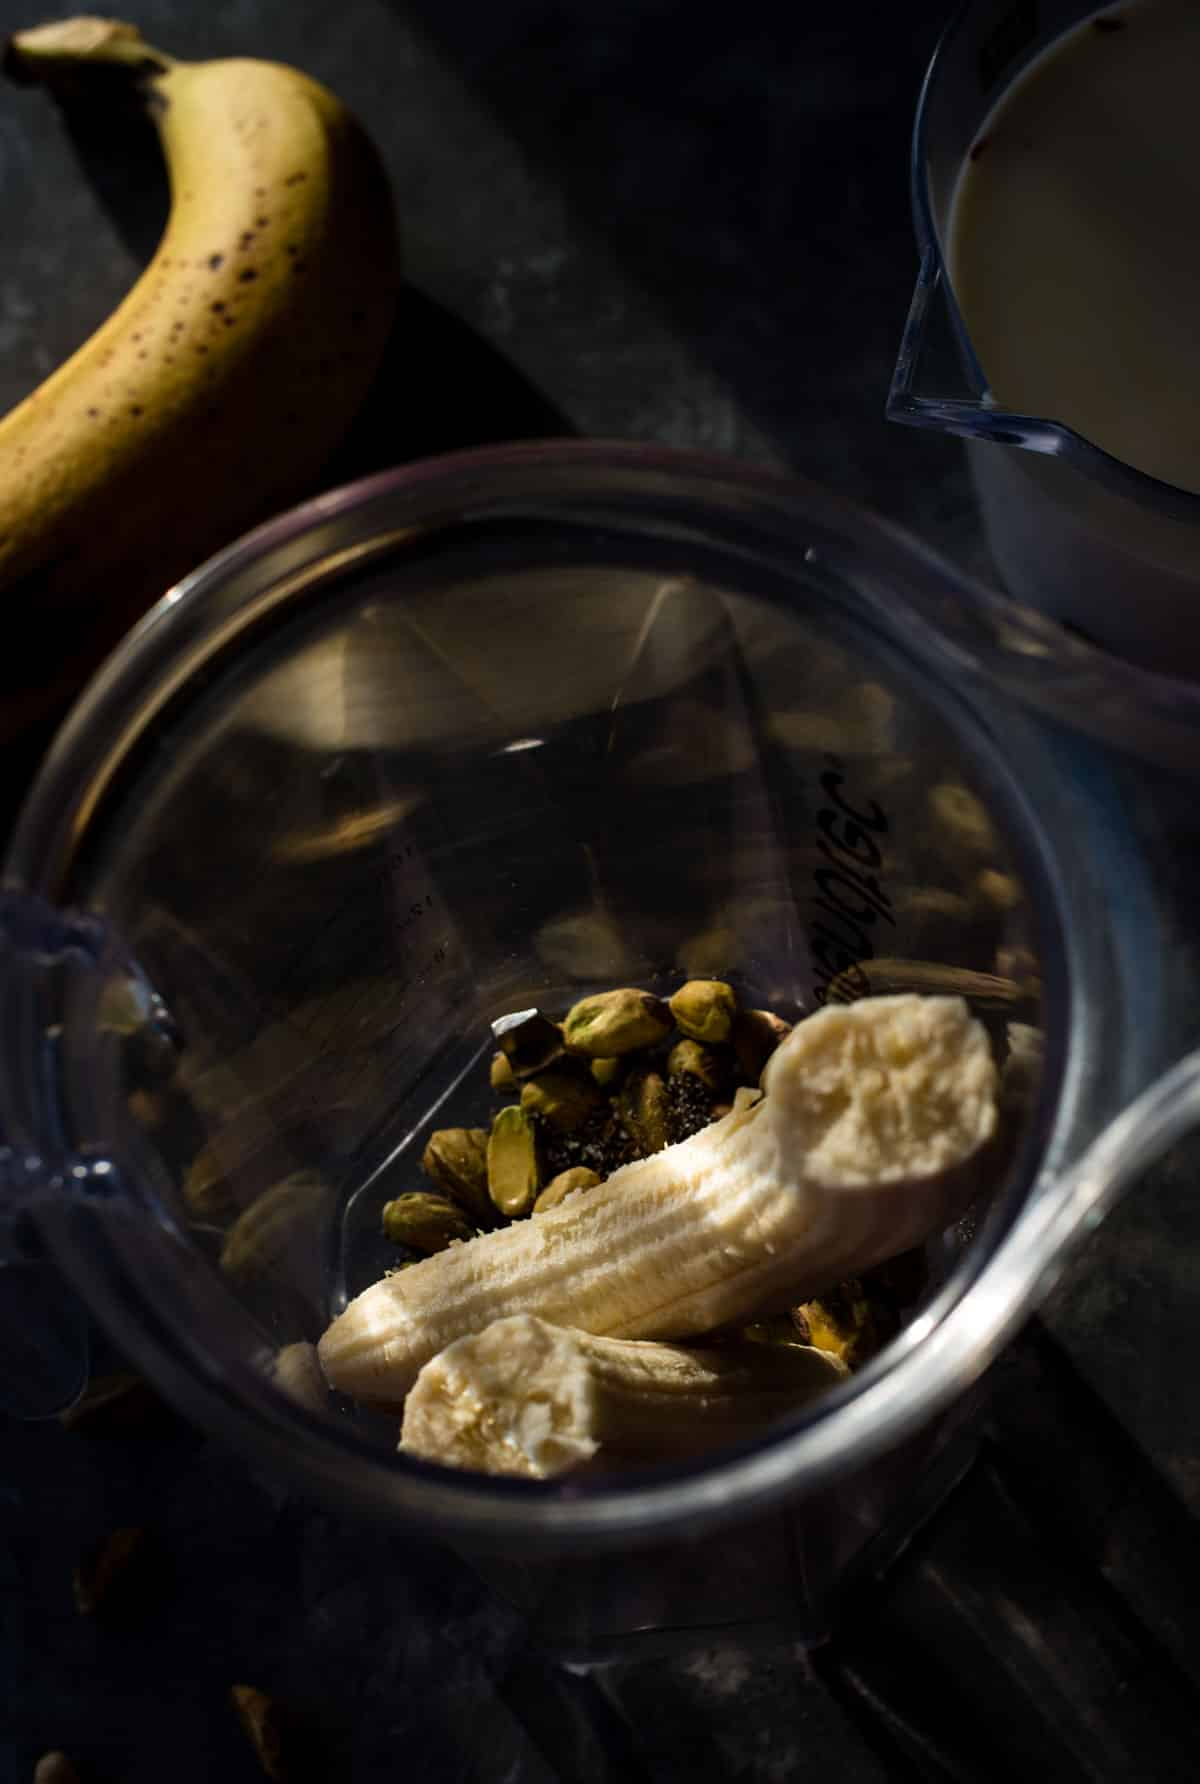 Ingredients for Kesar Pista smoothie in a blender with a banana on the side